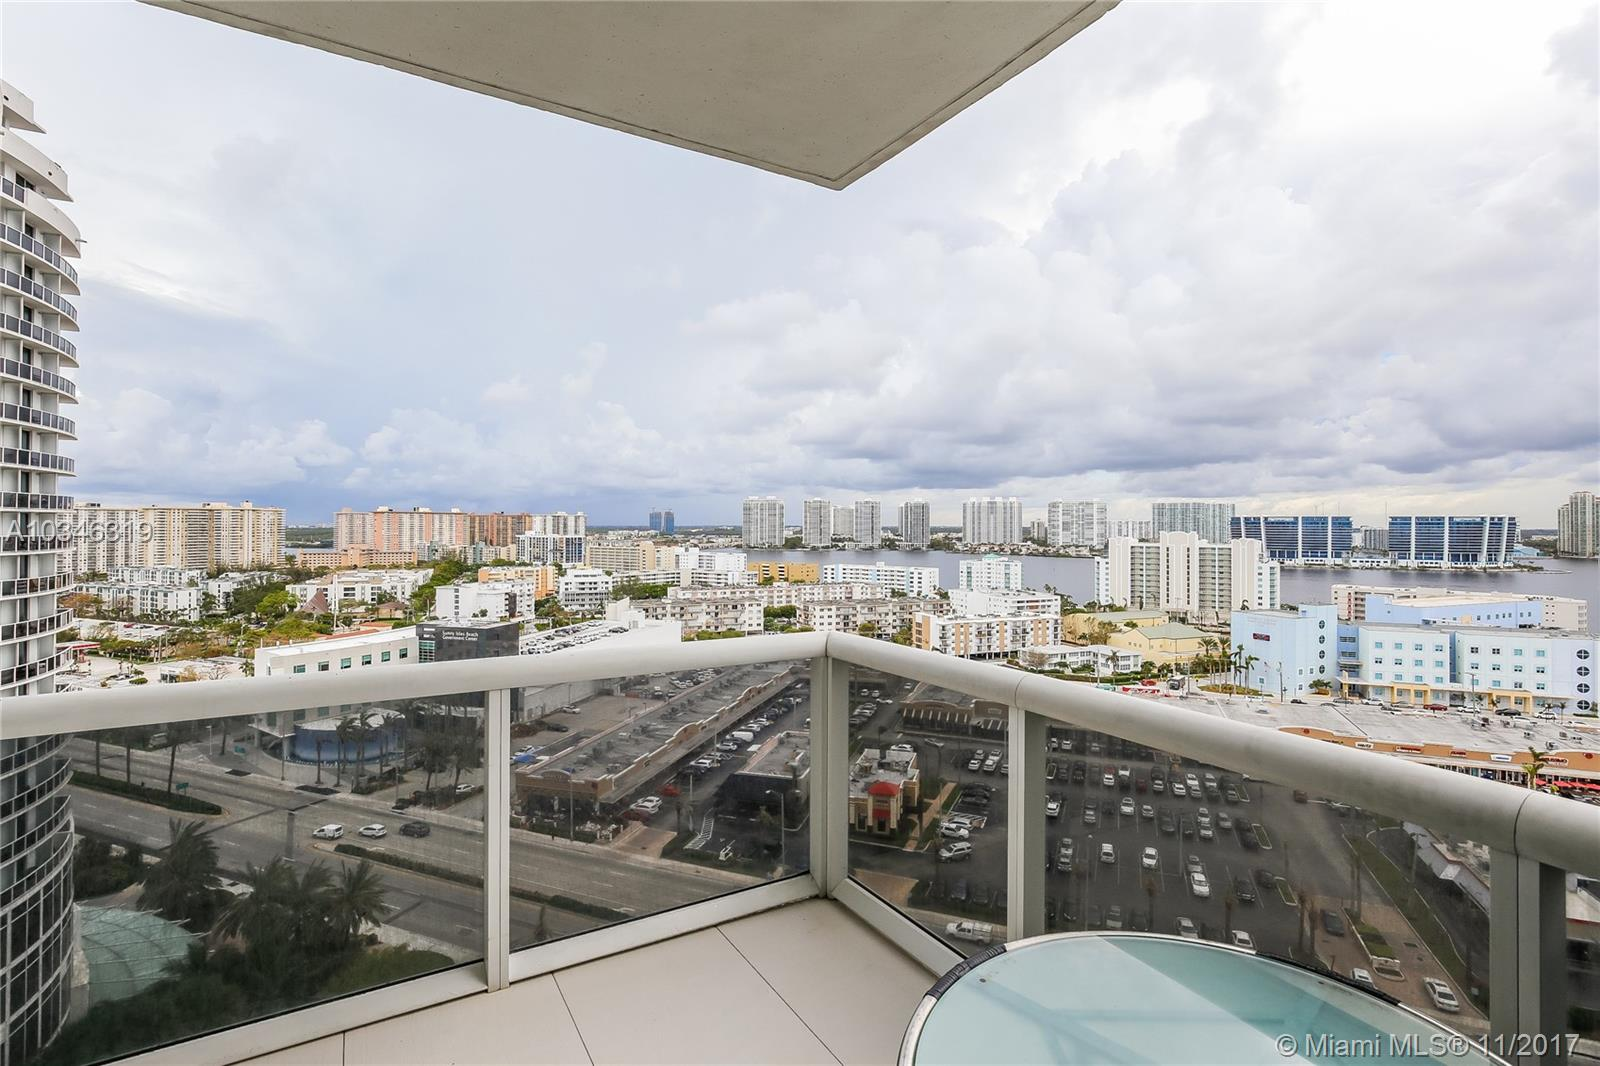 18101 Collins Ave # 1701, Sunny Isles Beach , FL 33160